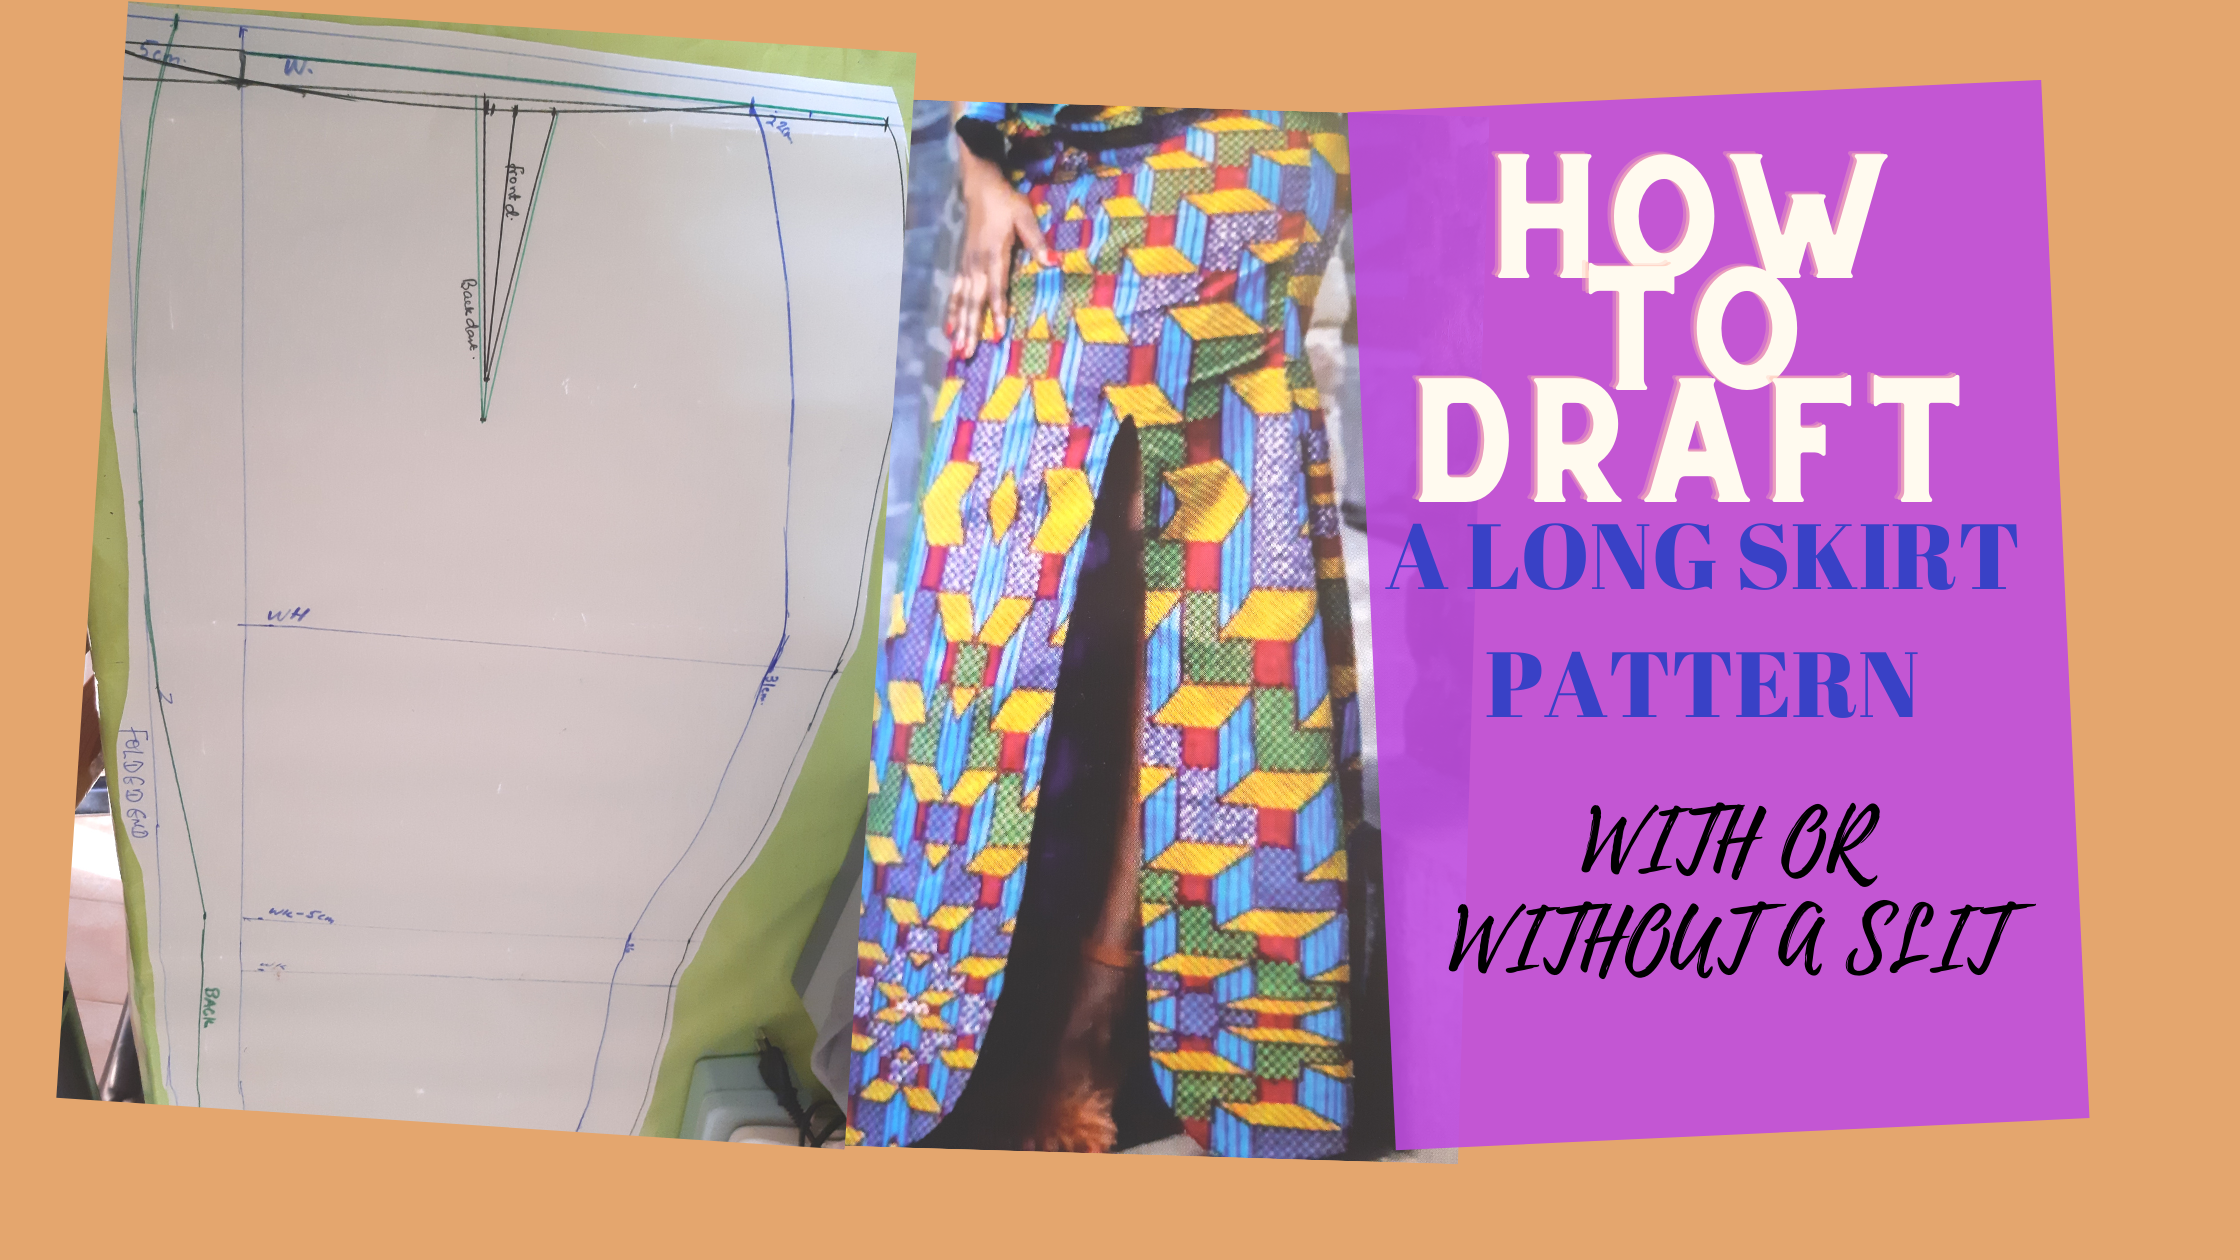 HOW TO DRAFT A LONG SKIRT PATTERN.WITH OR WITHOUT FRONT SLIT